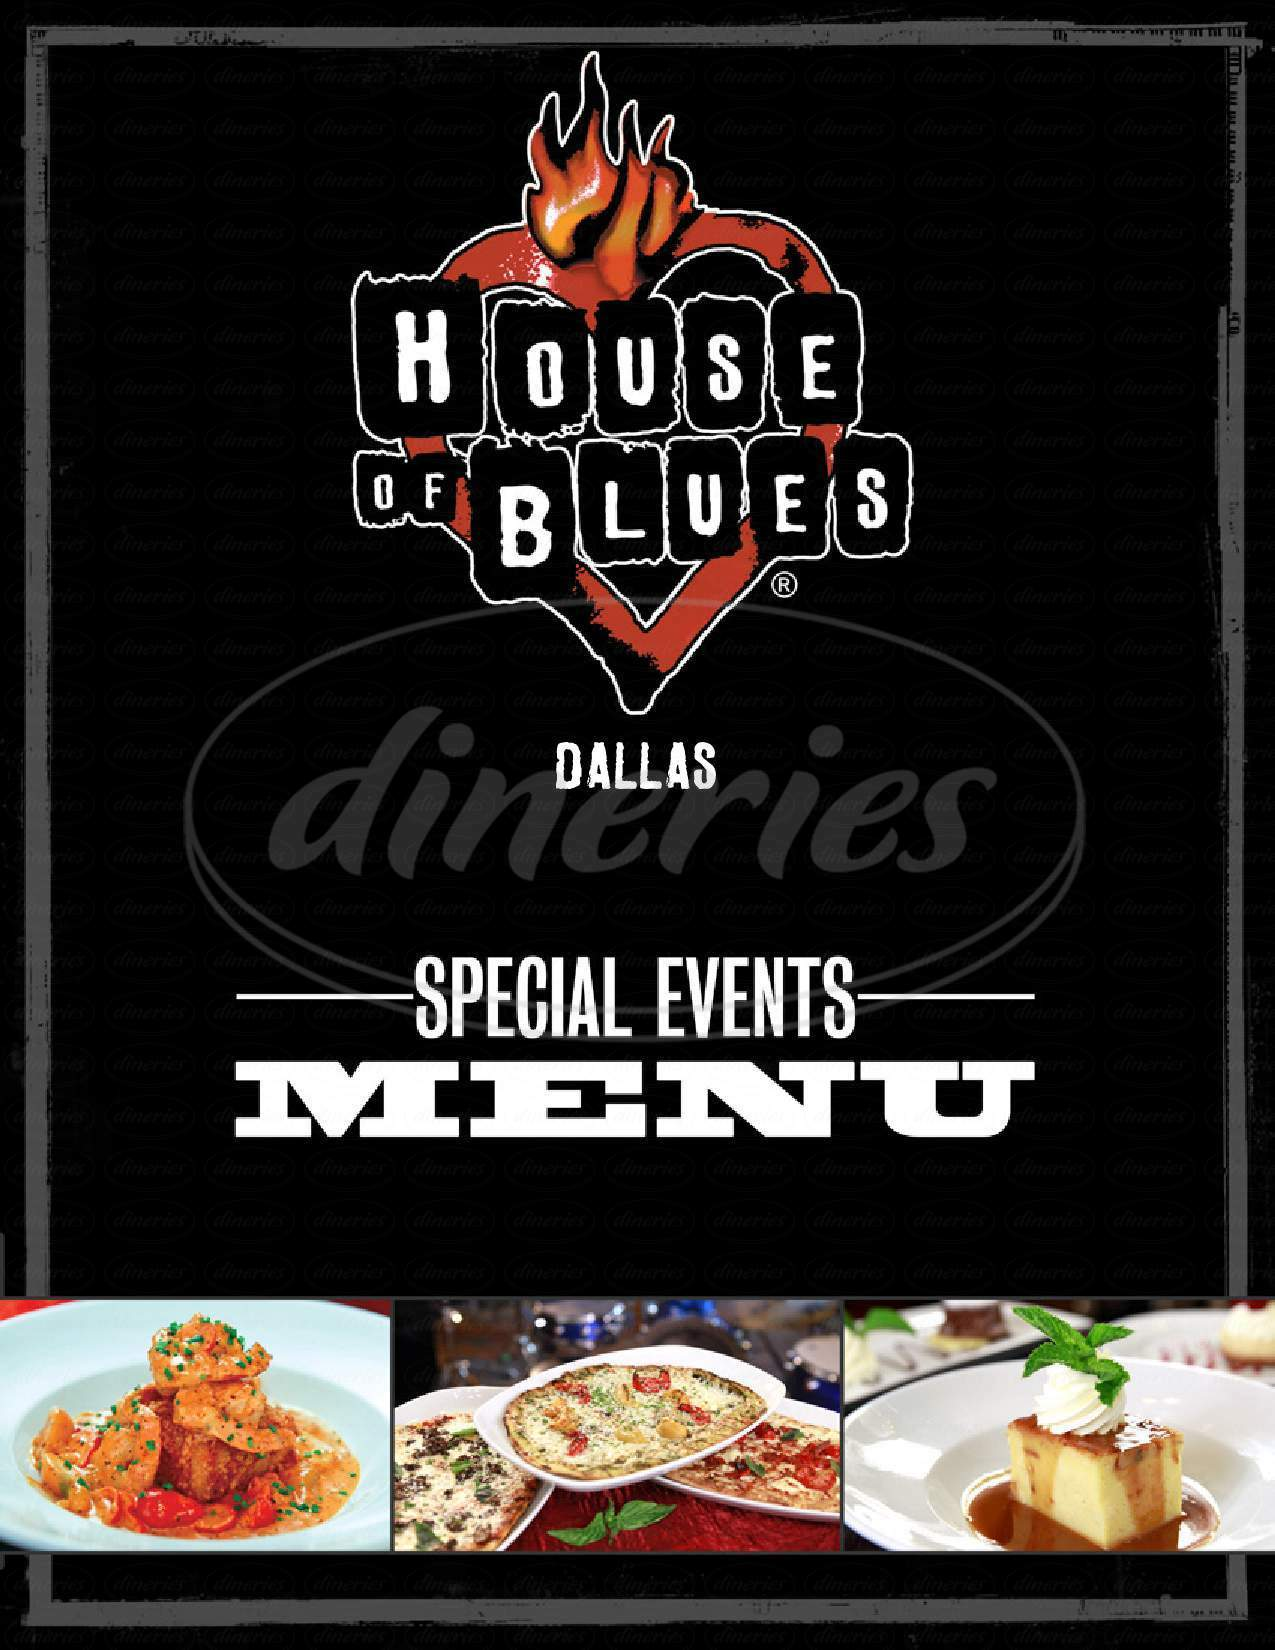 menu for House of Blues